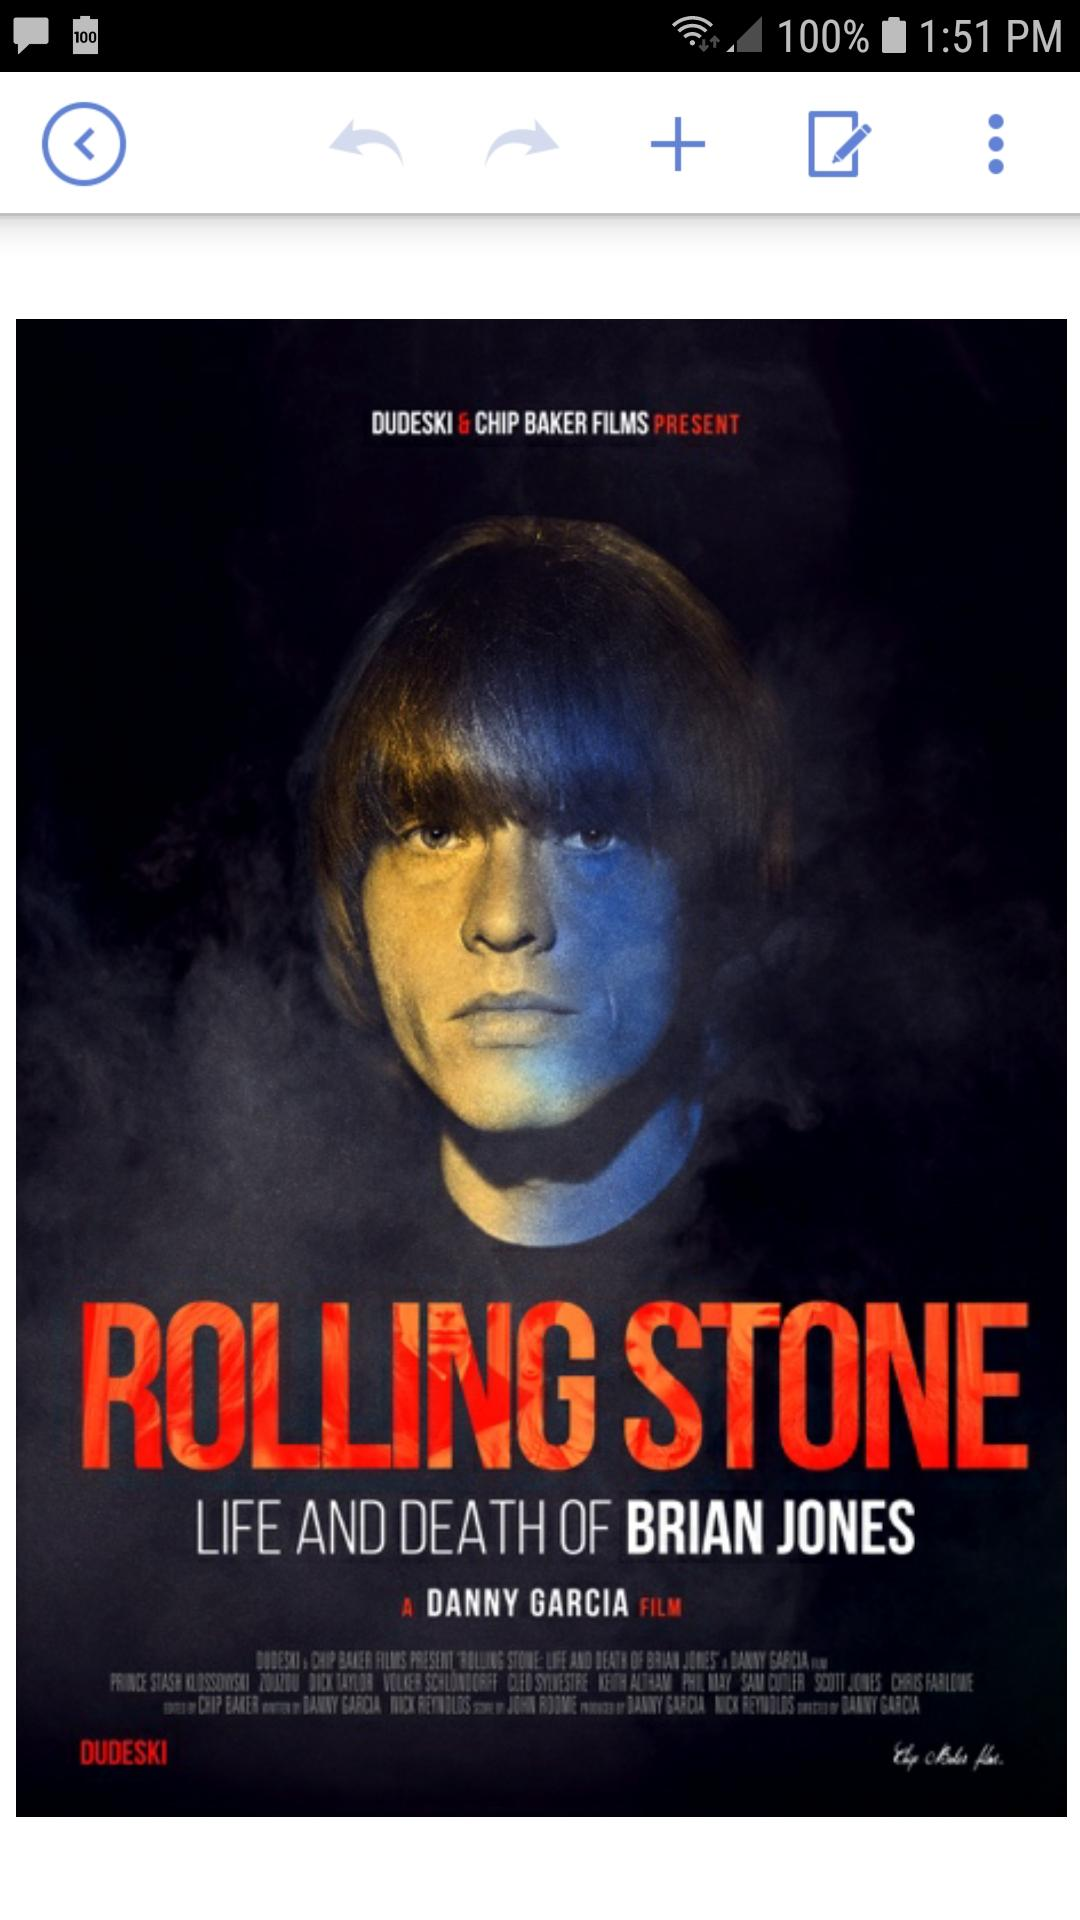 Rolling Stone Life and Death of Brian Jones Asbury Park film screening